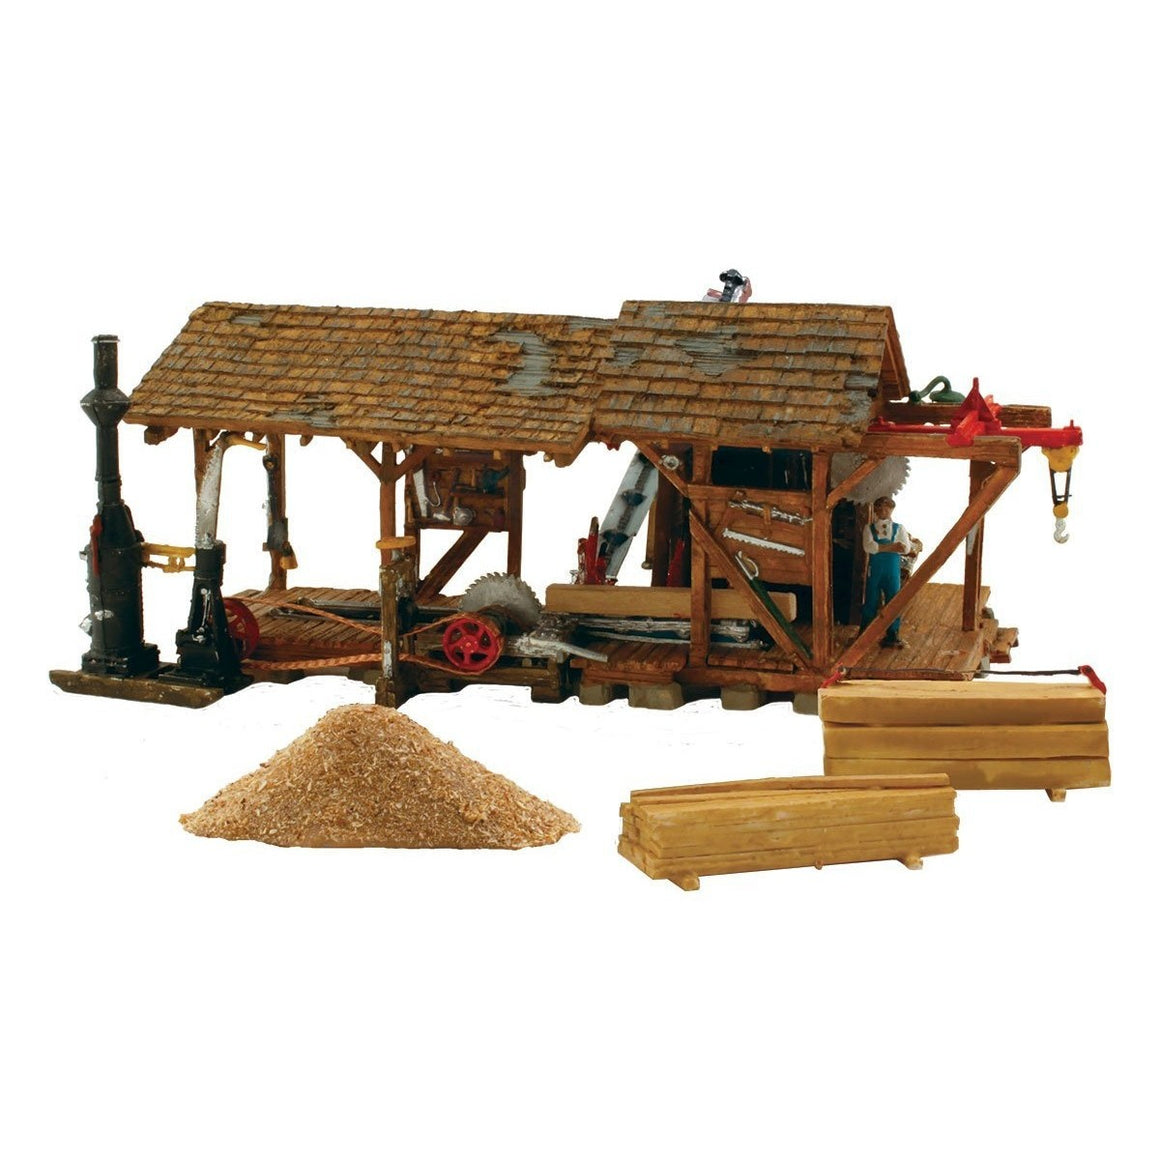 HO Scale: Buzz's Sawmill Kit